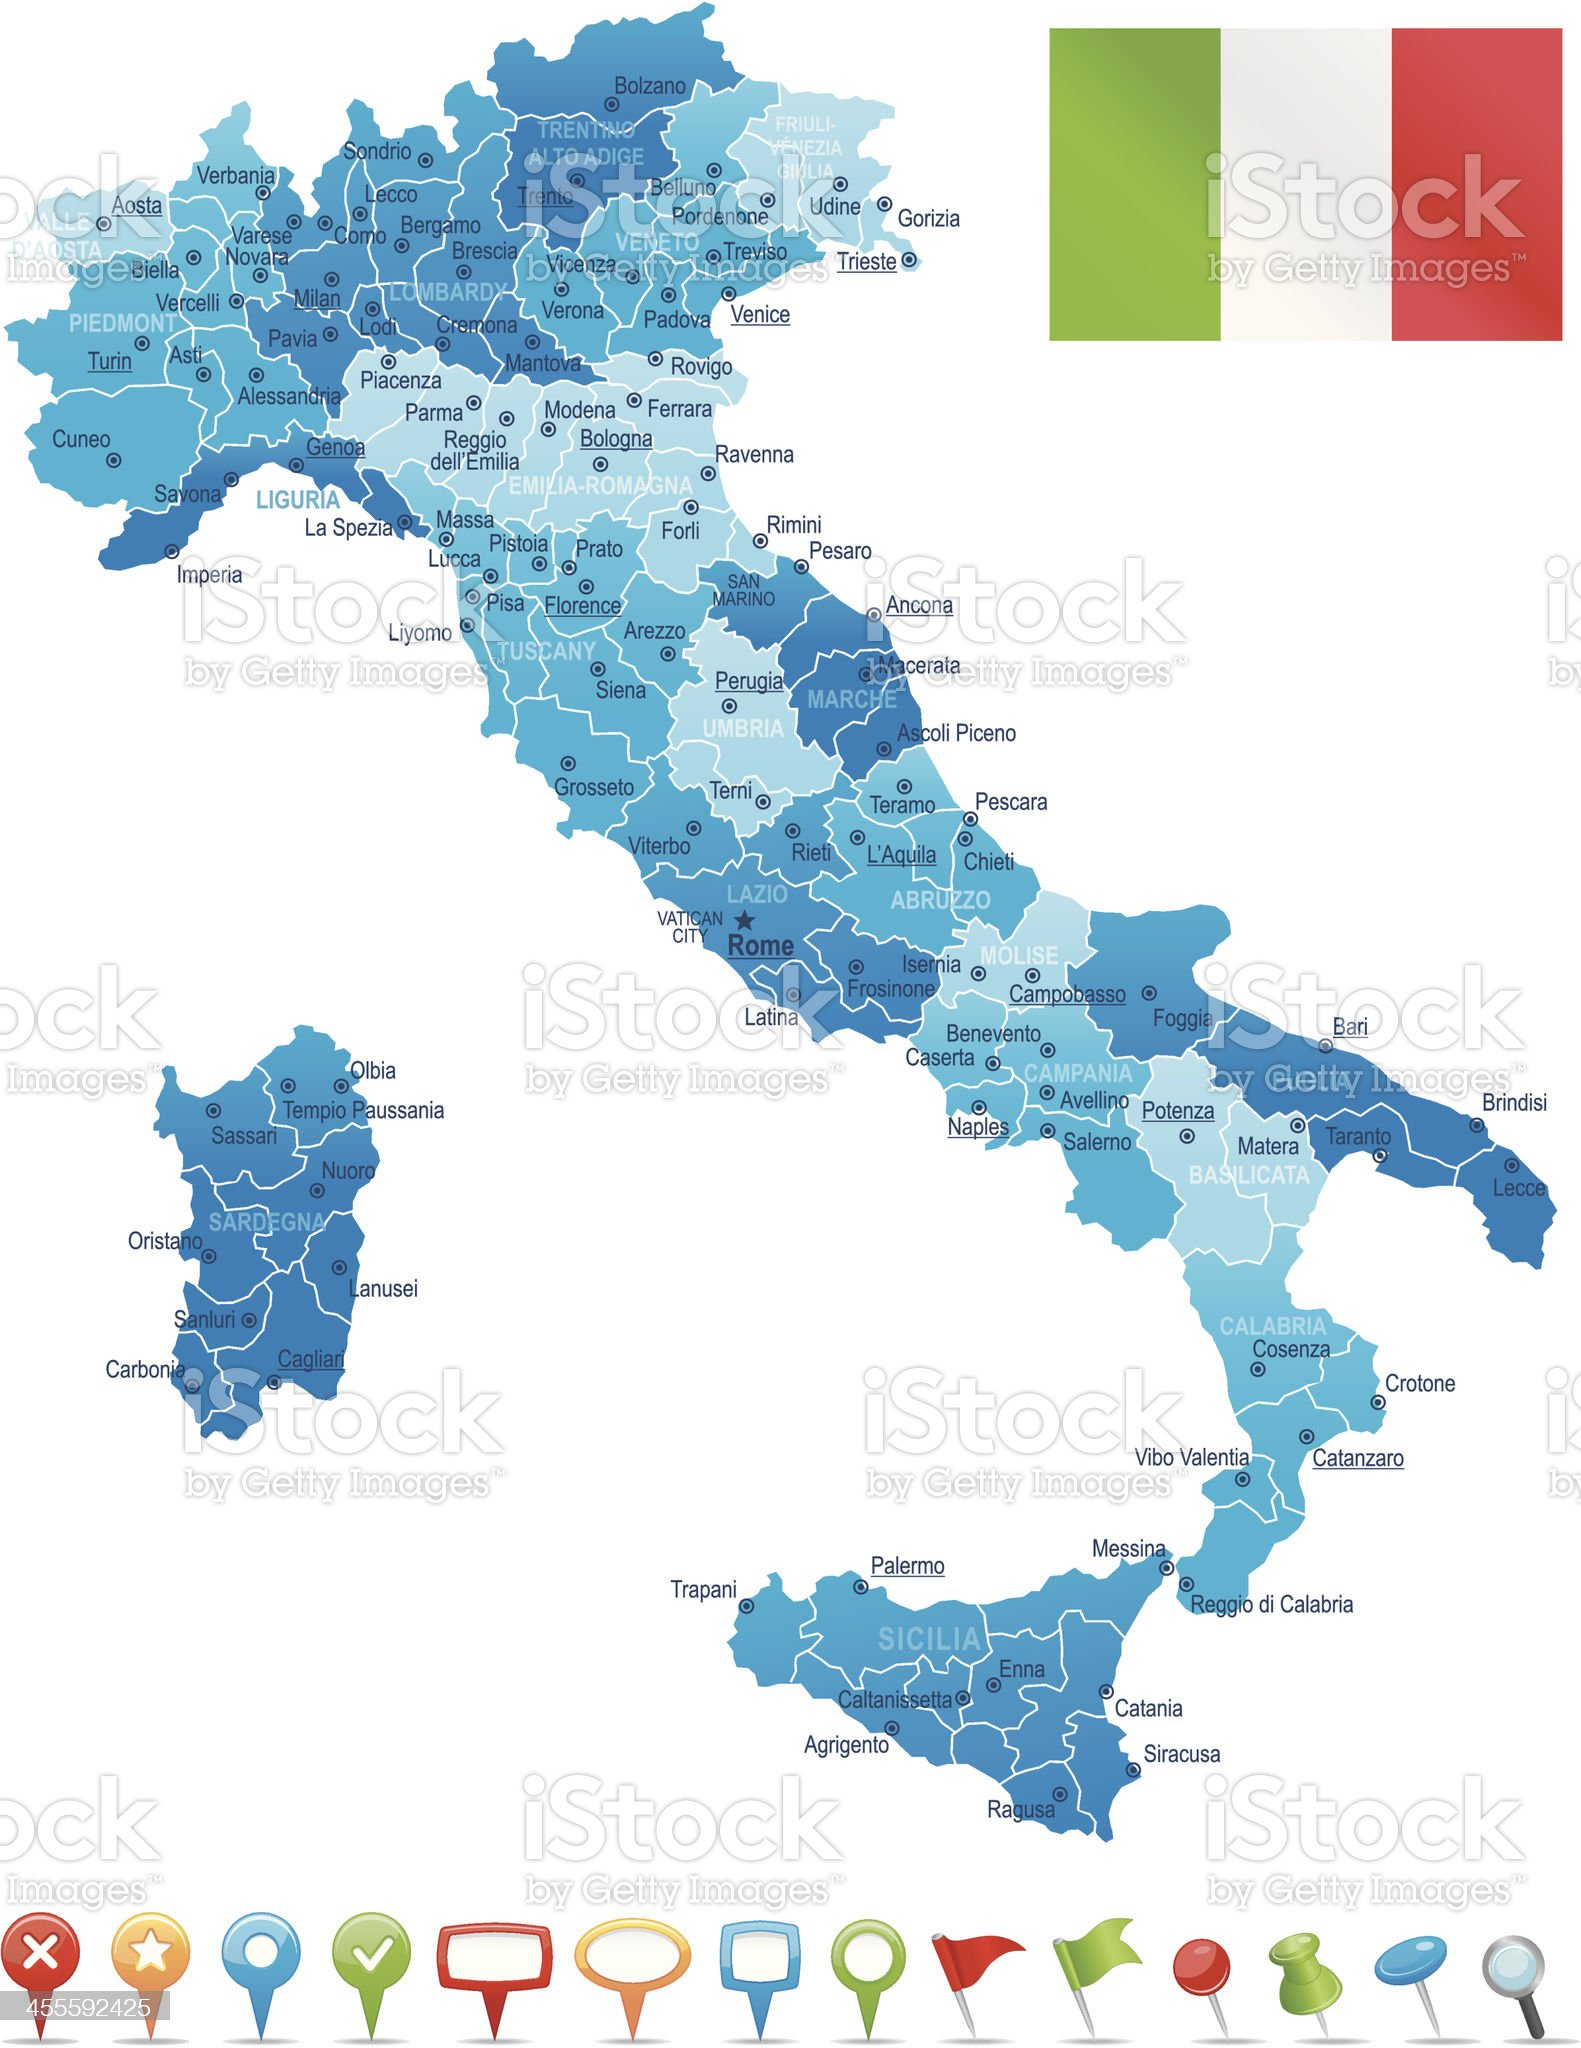 Italy - highly detailed map royalty-free stock vector art